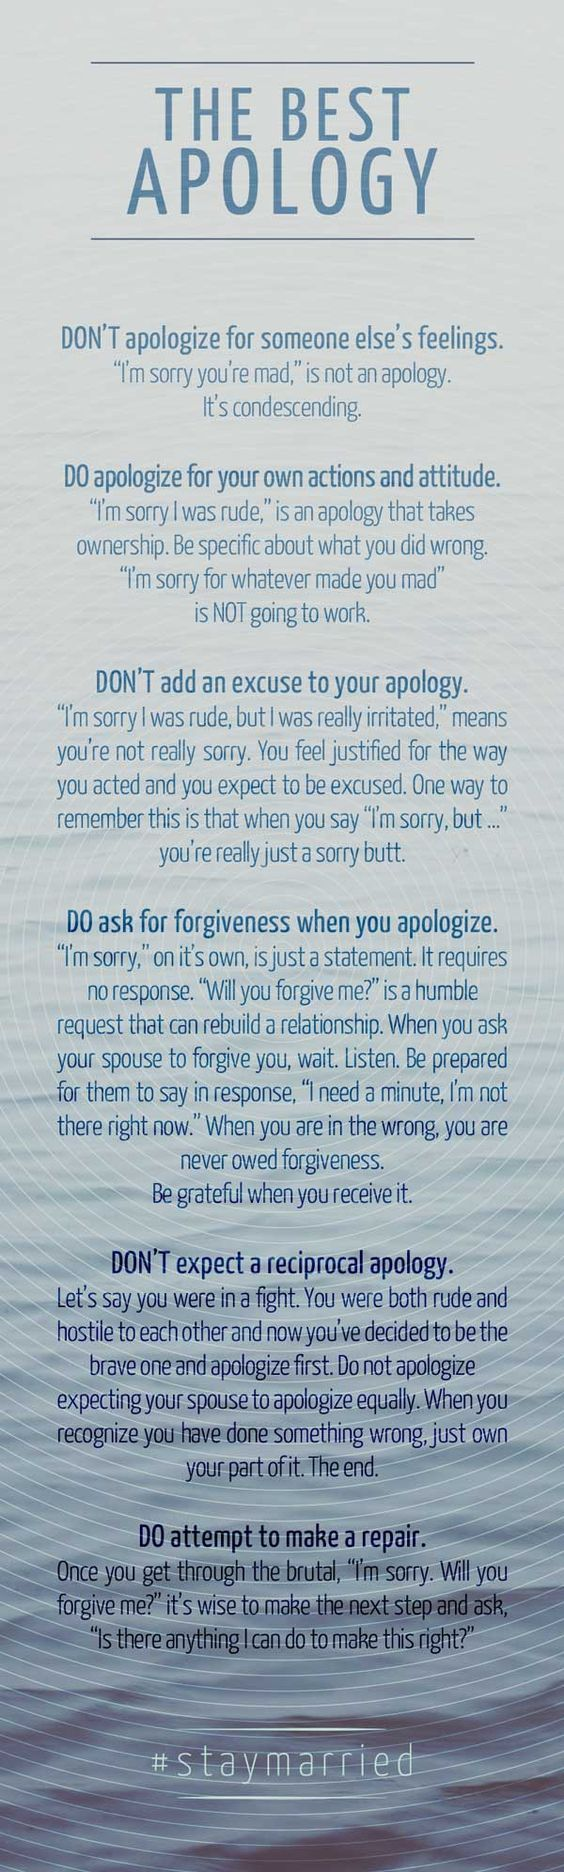 The Best Apology How to say sorry like you mean it staymarried